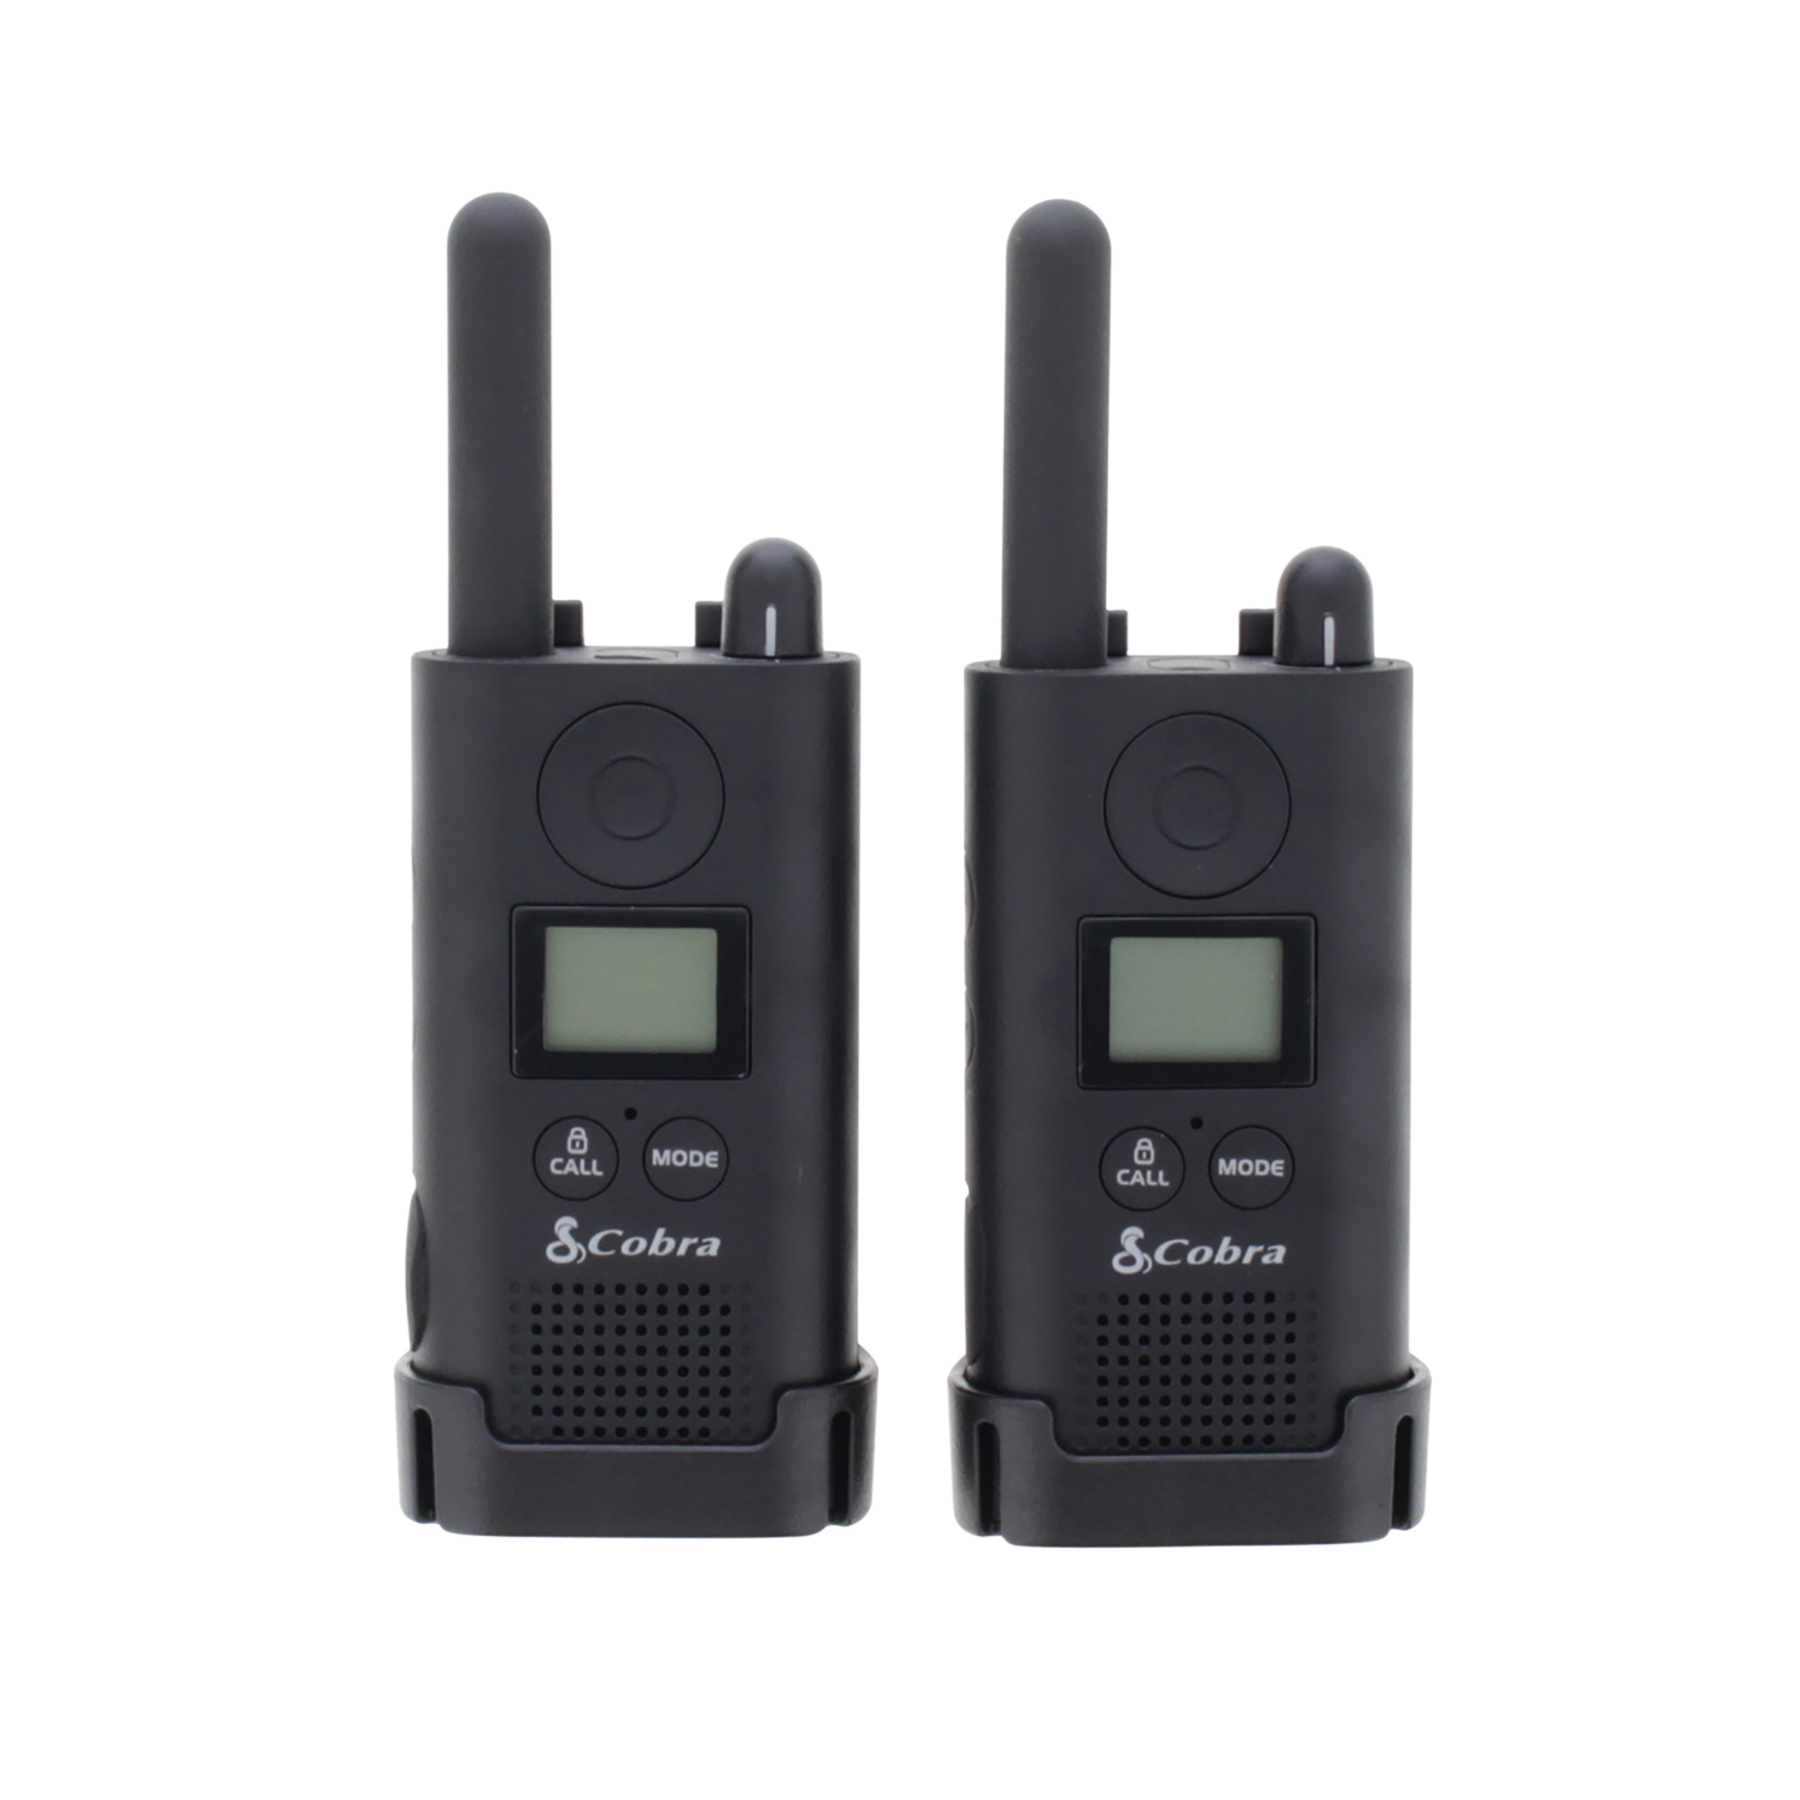 Radio frequency transmitters or receivers Cobra PU 500 Pro Business Two Way Radios 16 Preset Channels Range 8km Ref PU500B+SV-01 [Pair]